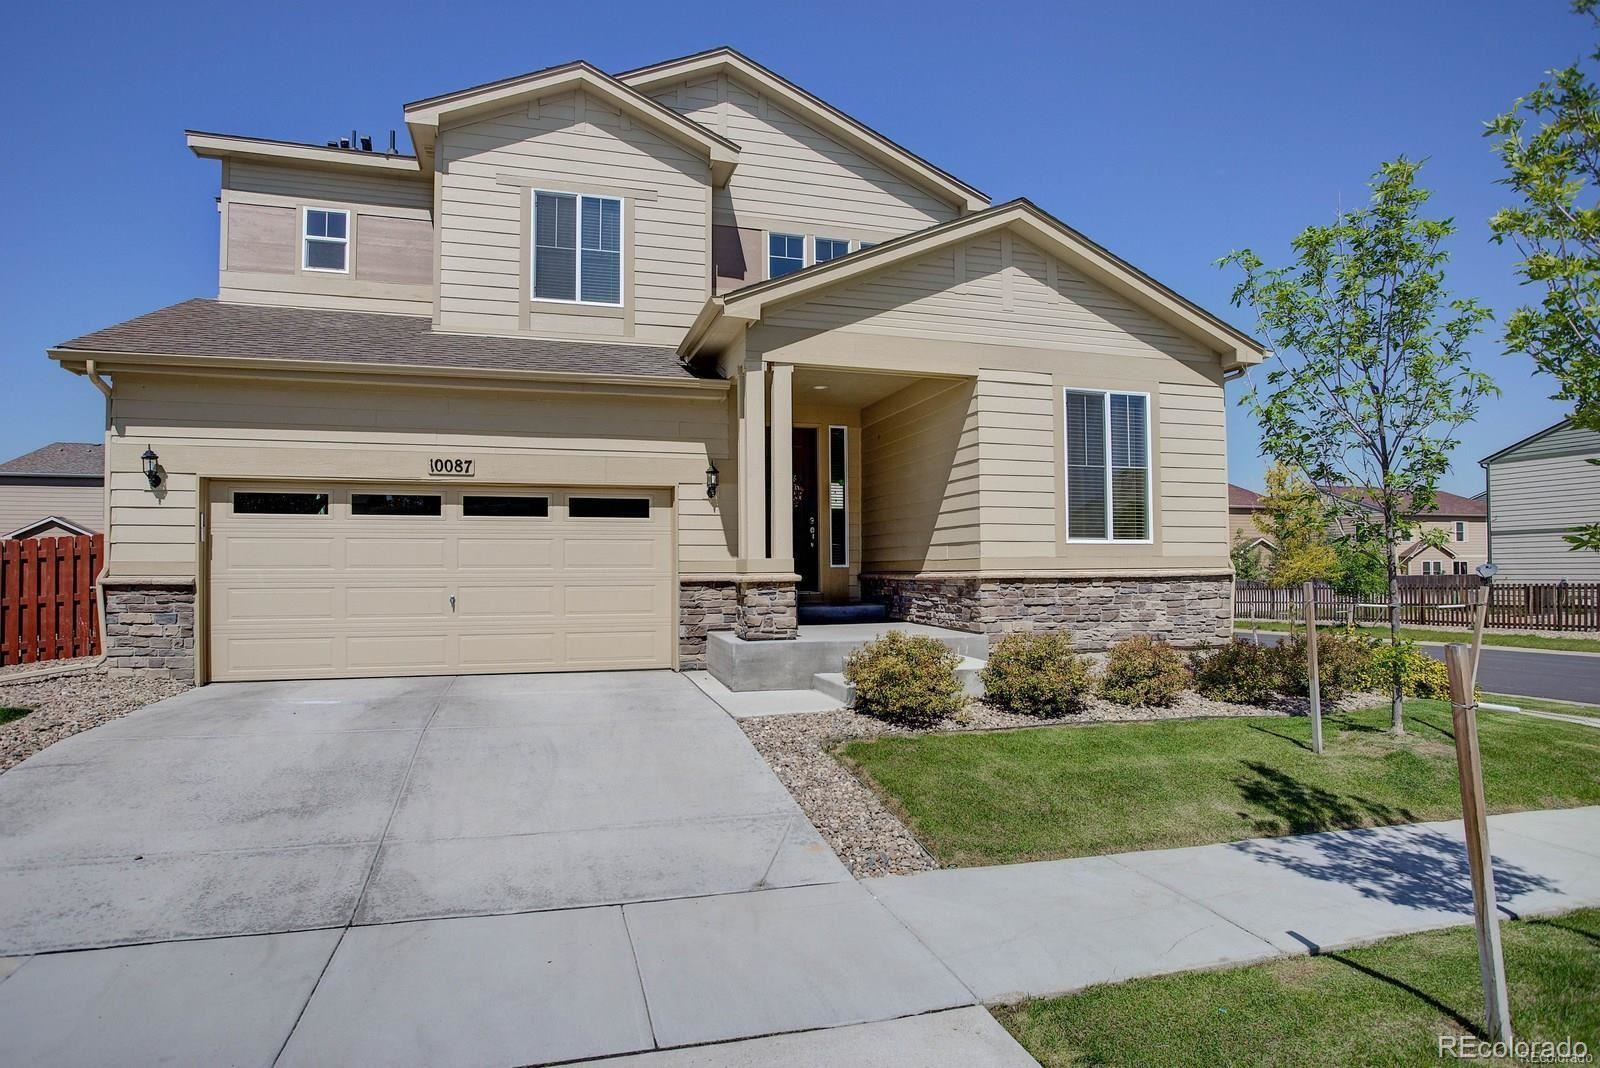 10087 Granby Street, Commerce City, CO 80022 - MLS#: 2368371